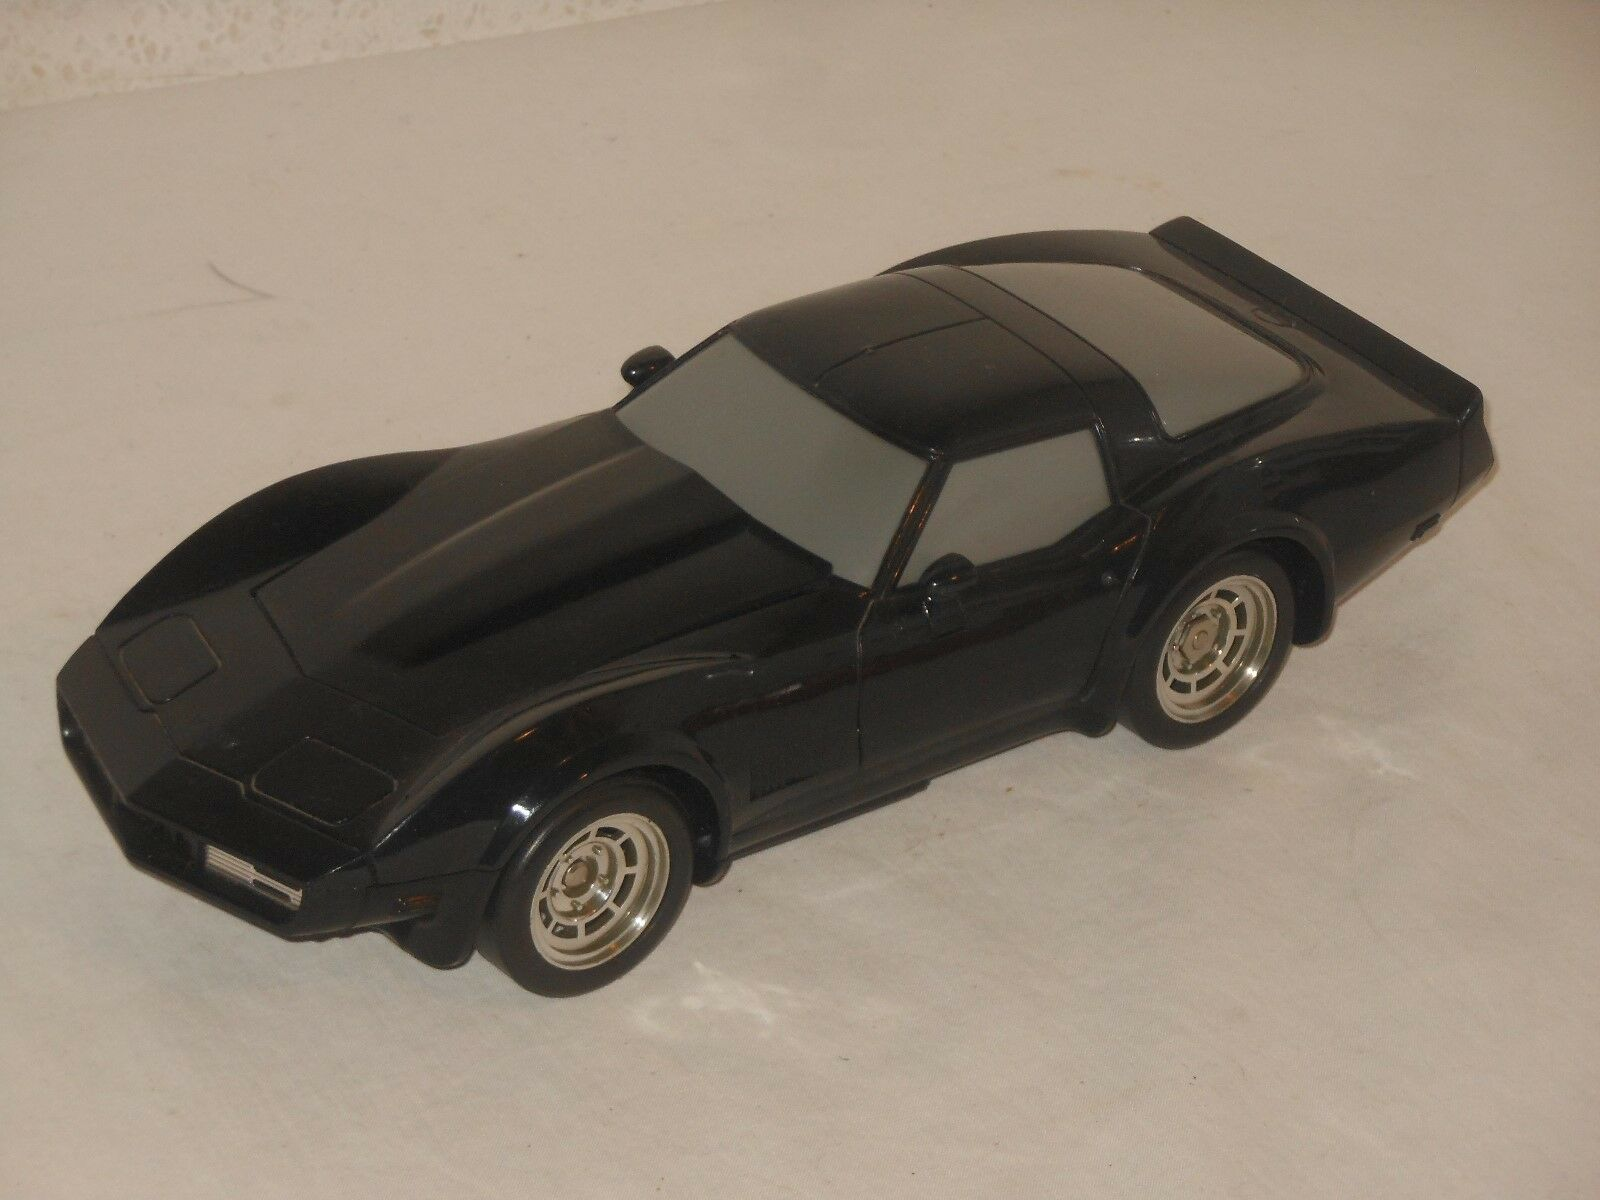 VINTAGE TOY - CHEVROLET CORVETTE COMPUTER COMMAND 255 - CAR - LJN 28 cm